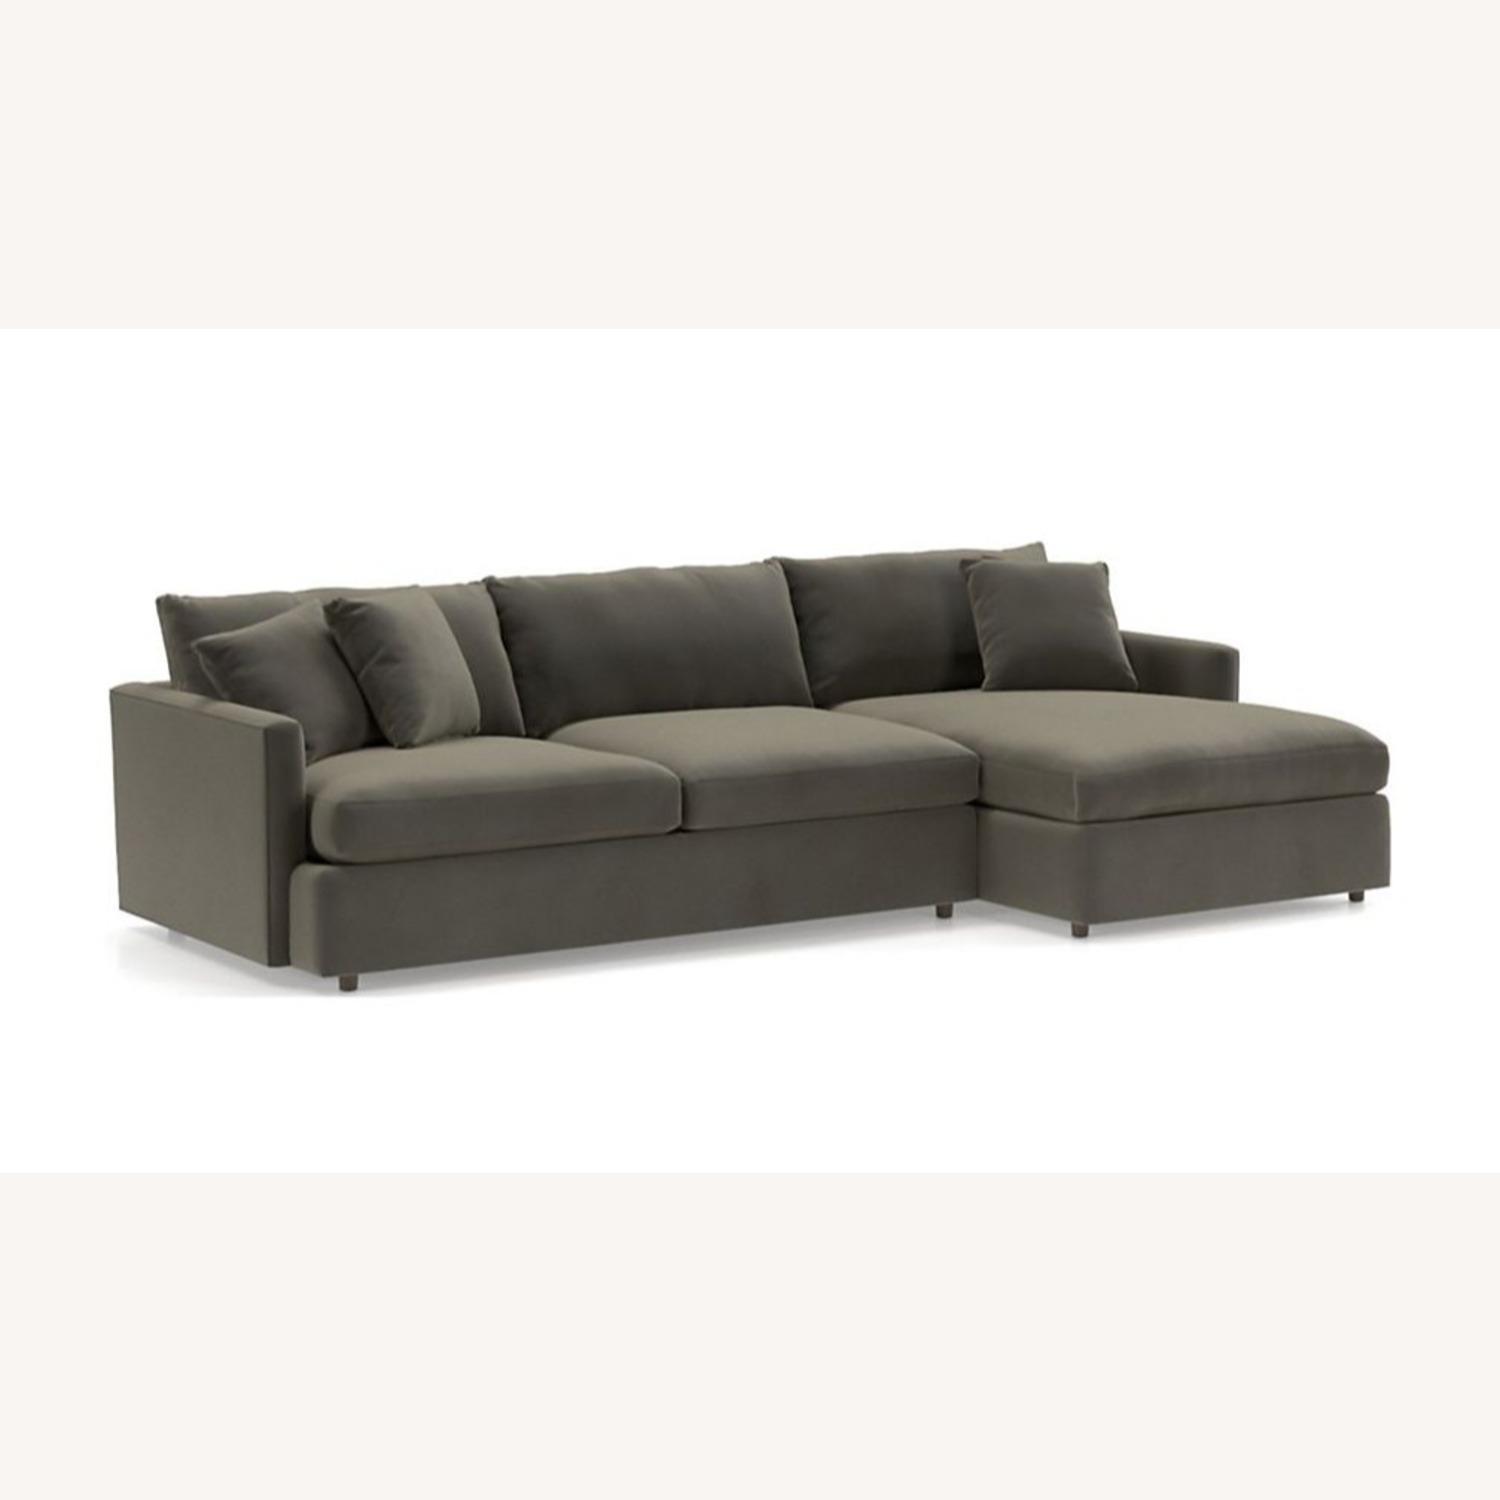 Crate & Barrel 3 Piece Sectional - image-4